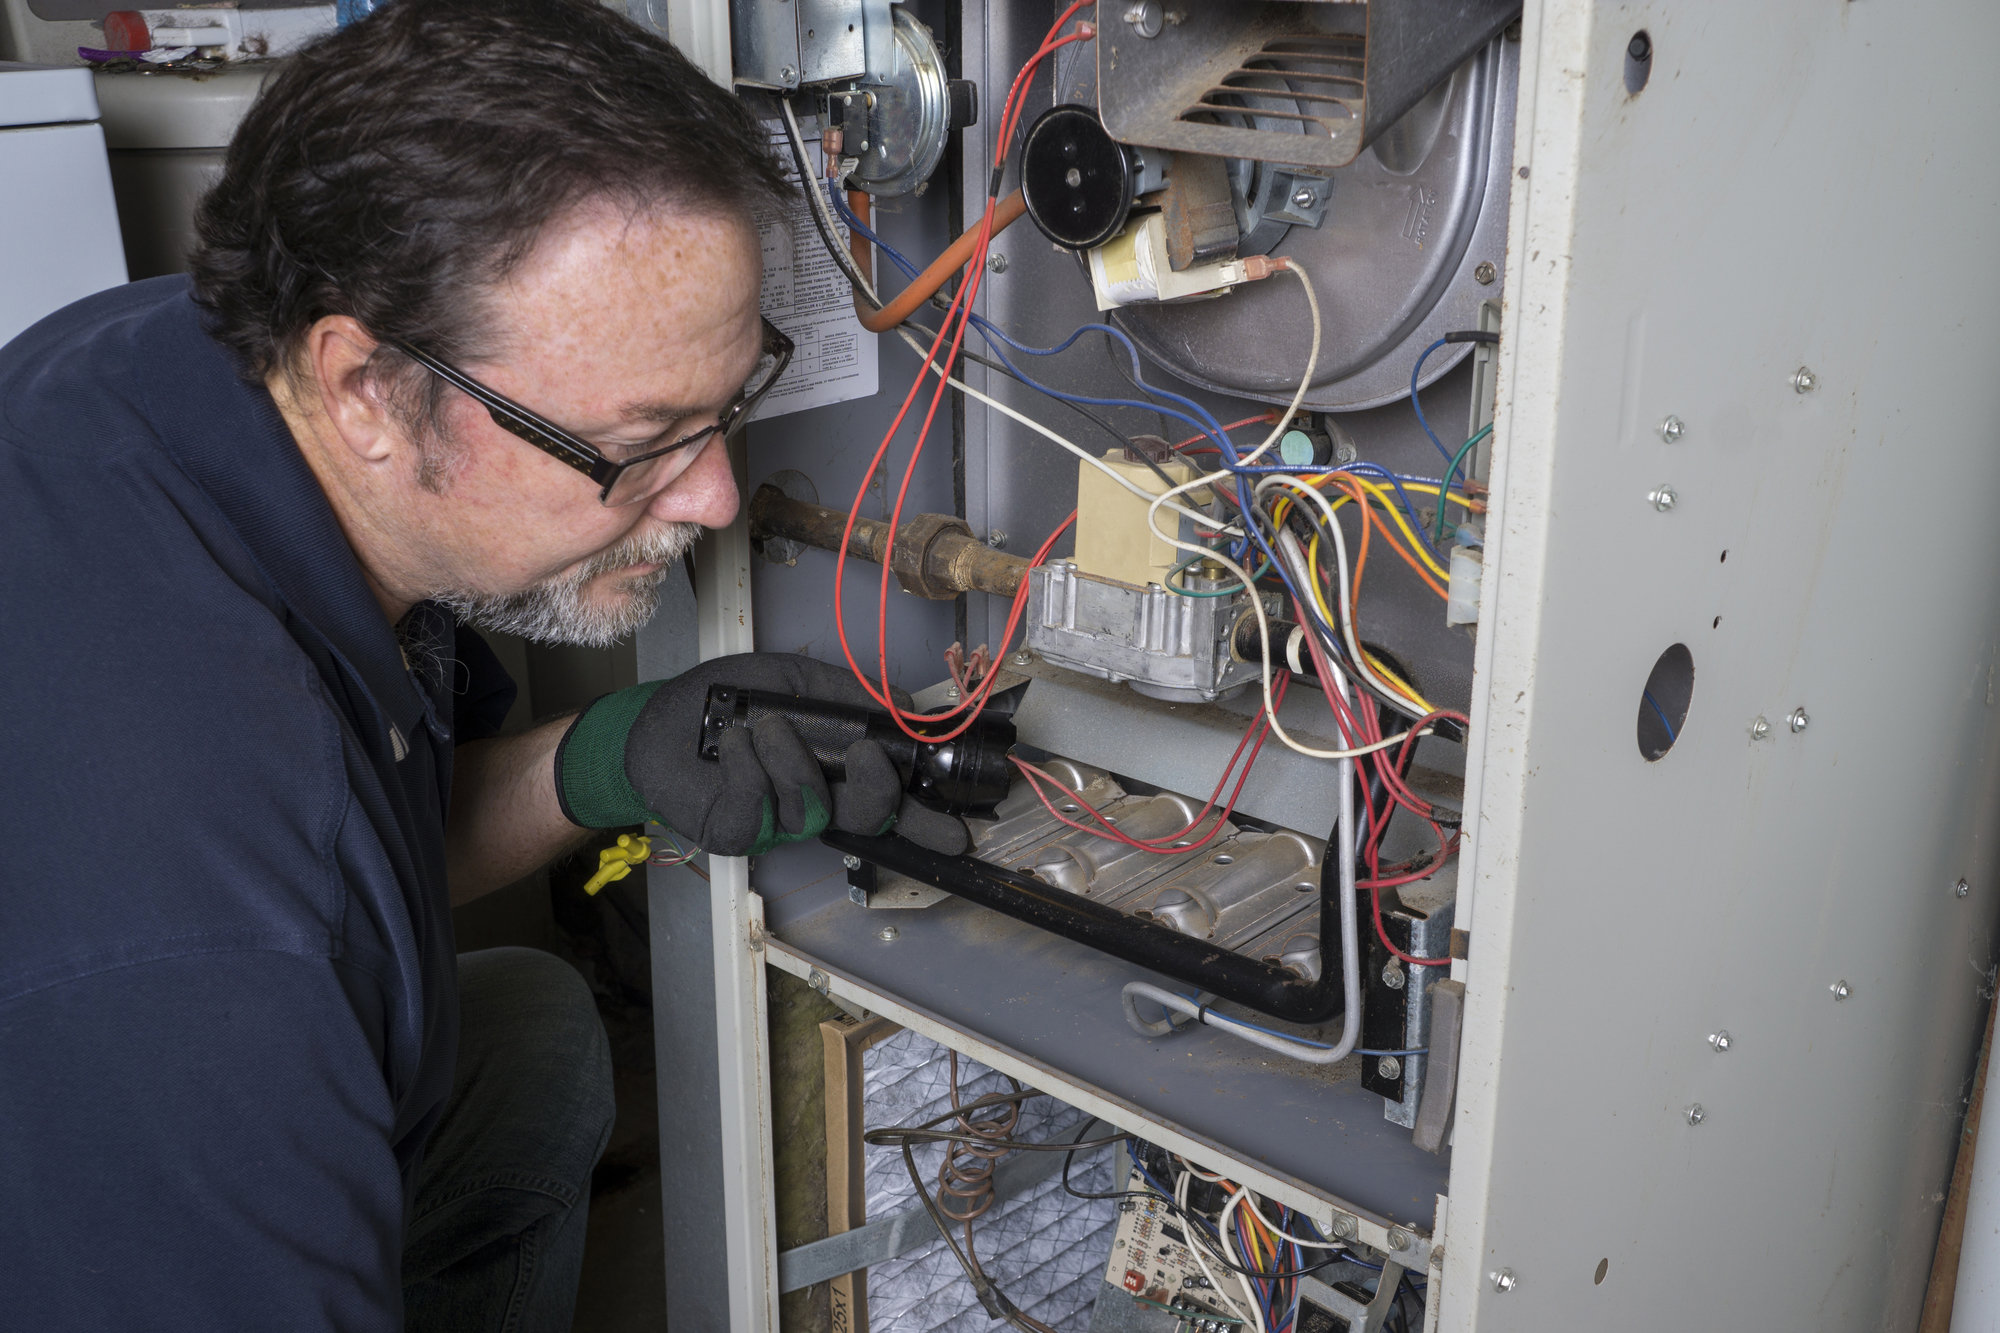 Heating Technician Repairing A Furnace